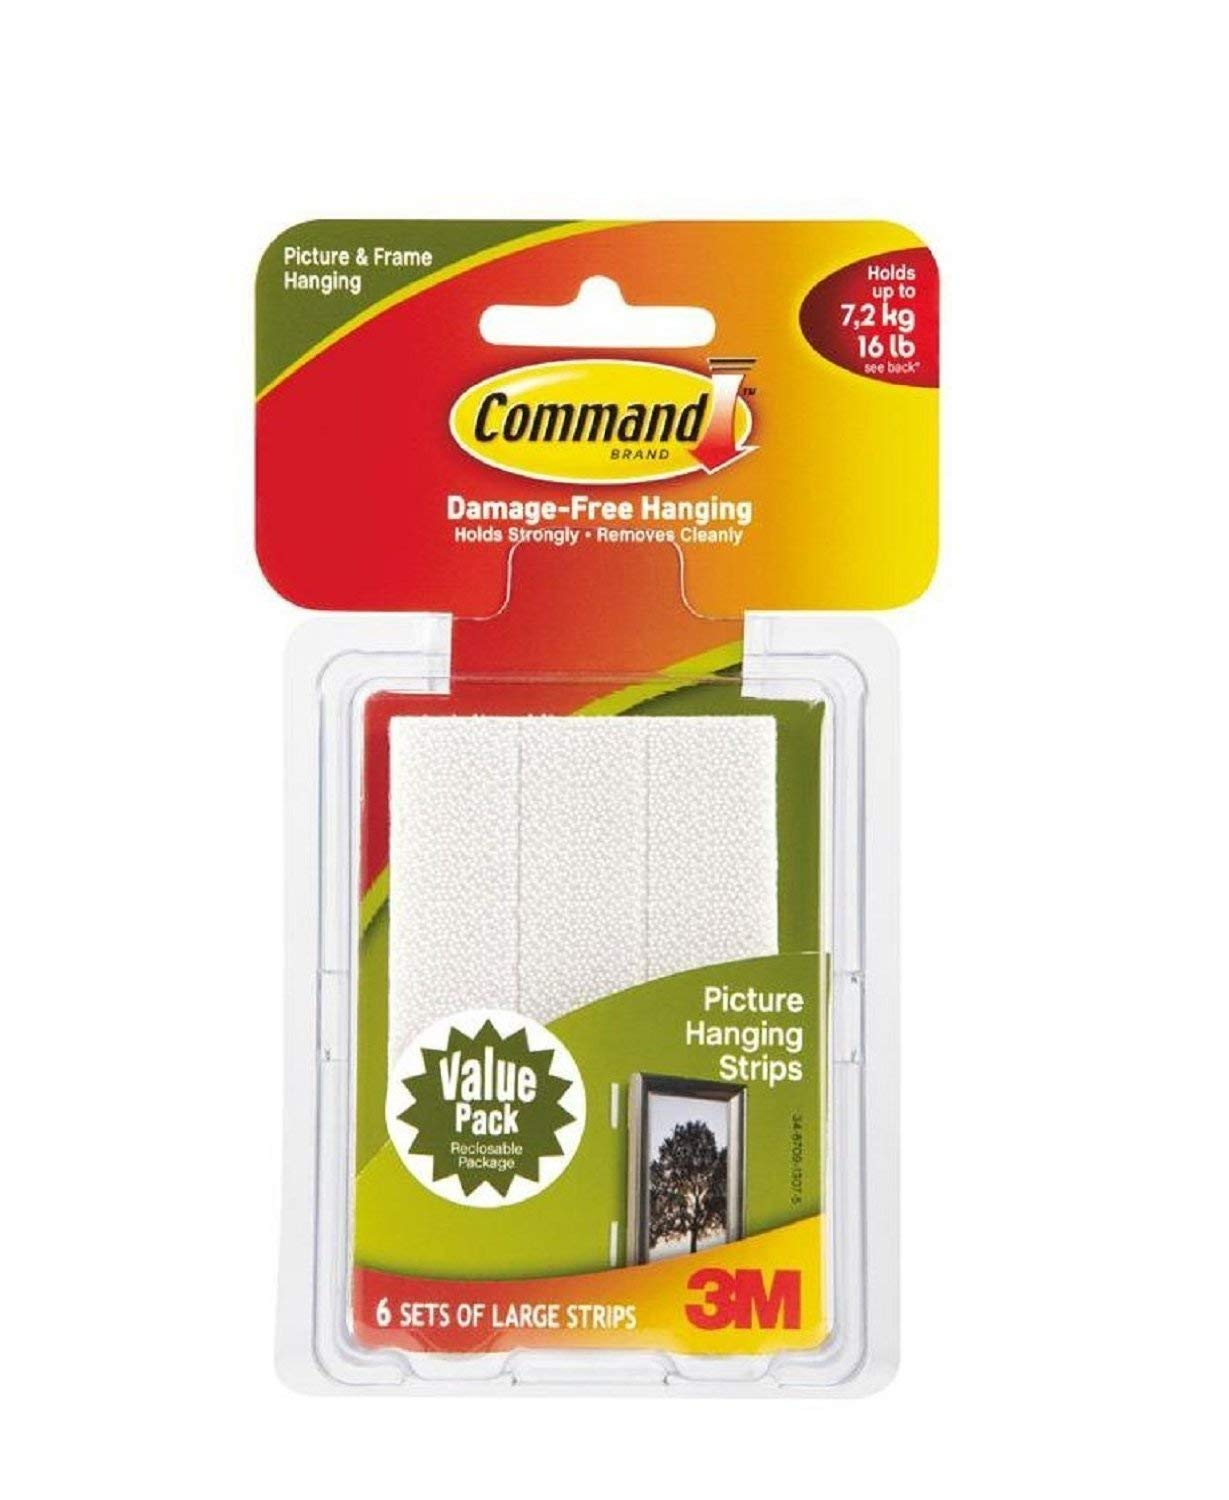 Command Damage Free Picture and Frame Hanging 7L3Q1, Large Strips (36 Pairs)